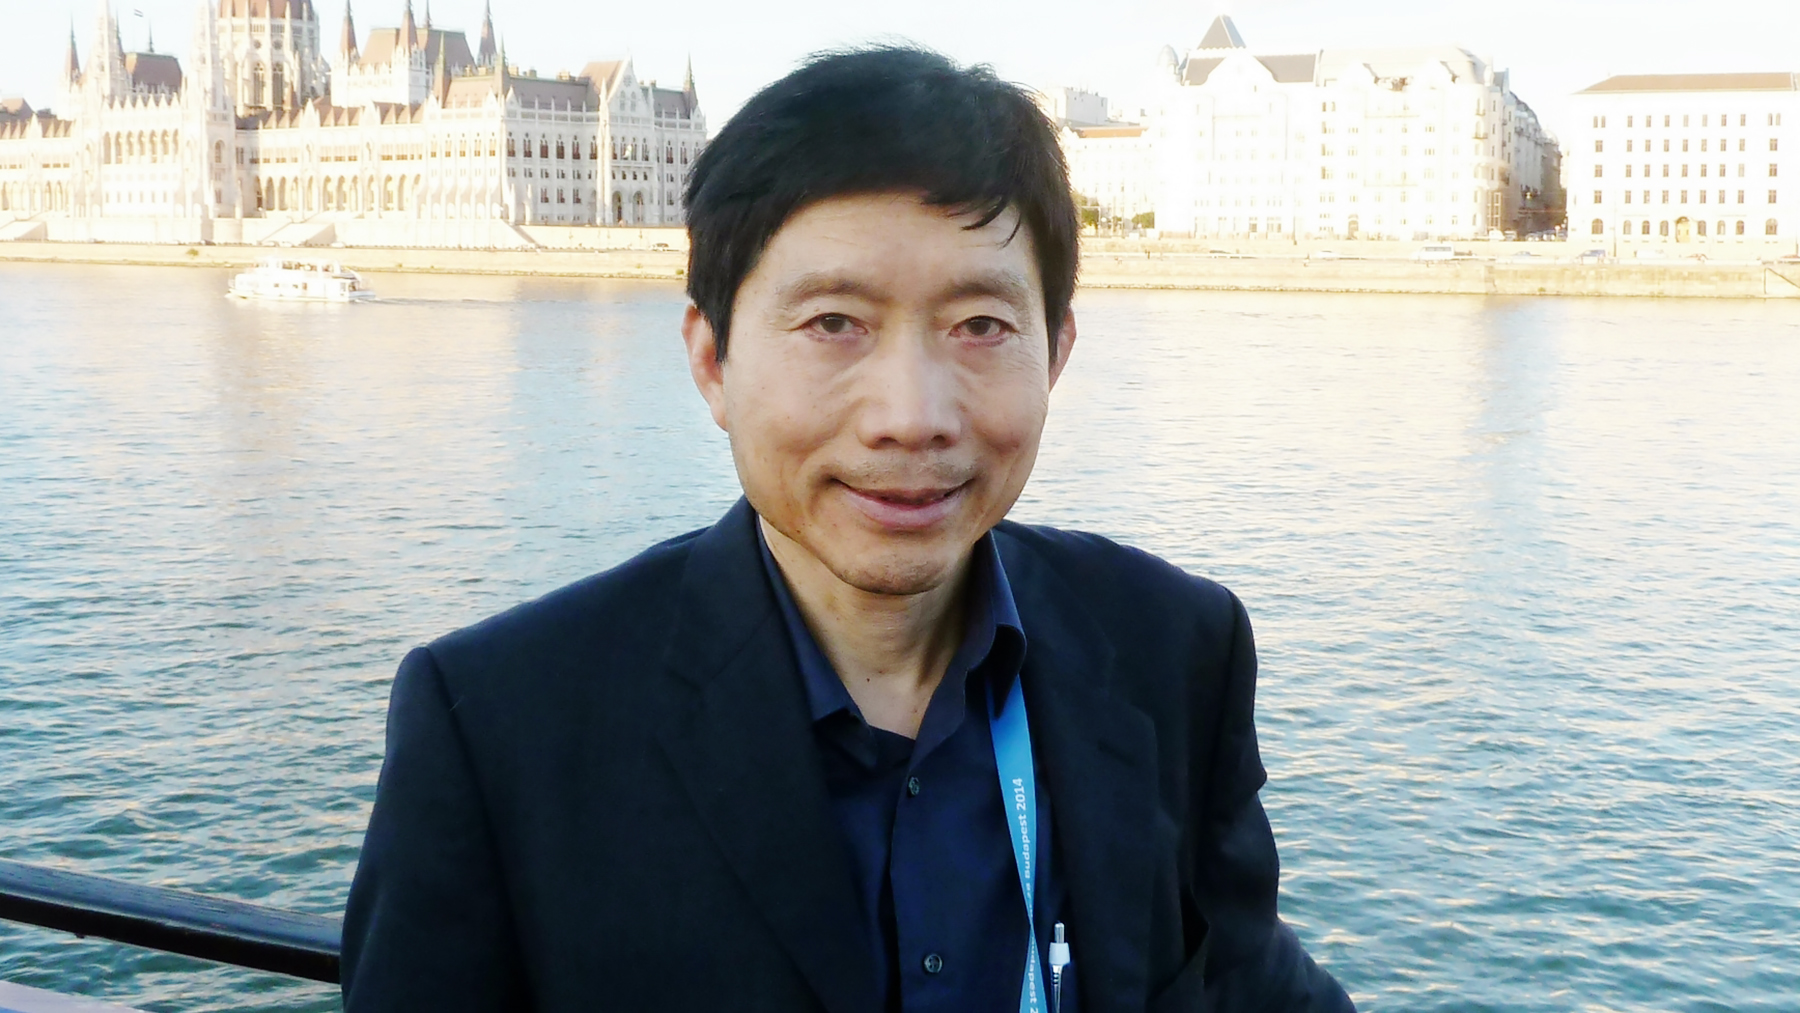 Sociology professor Tim Liao led a recently published study that examined the association between social and economic inequalities in U.S. counties and COVID-19 infections and deaths. Photo courtesy Tim Liao